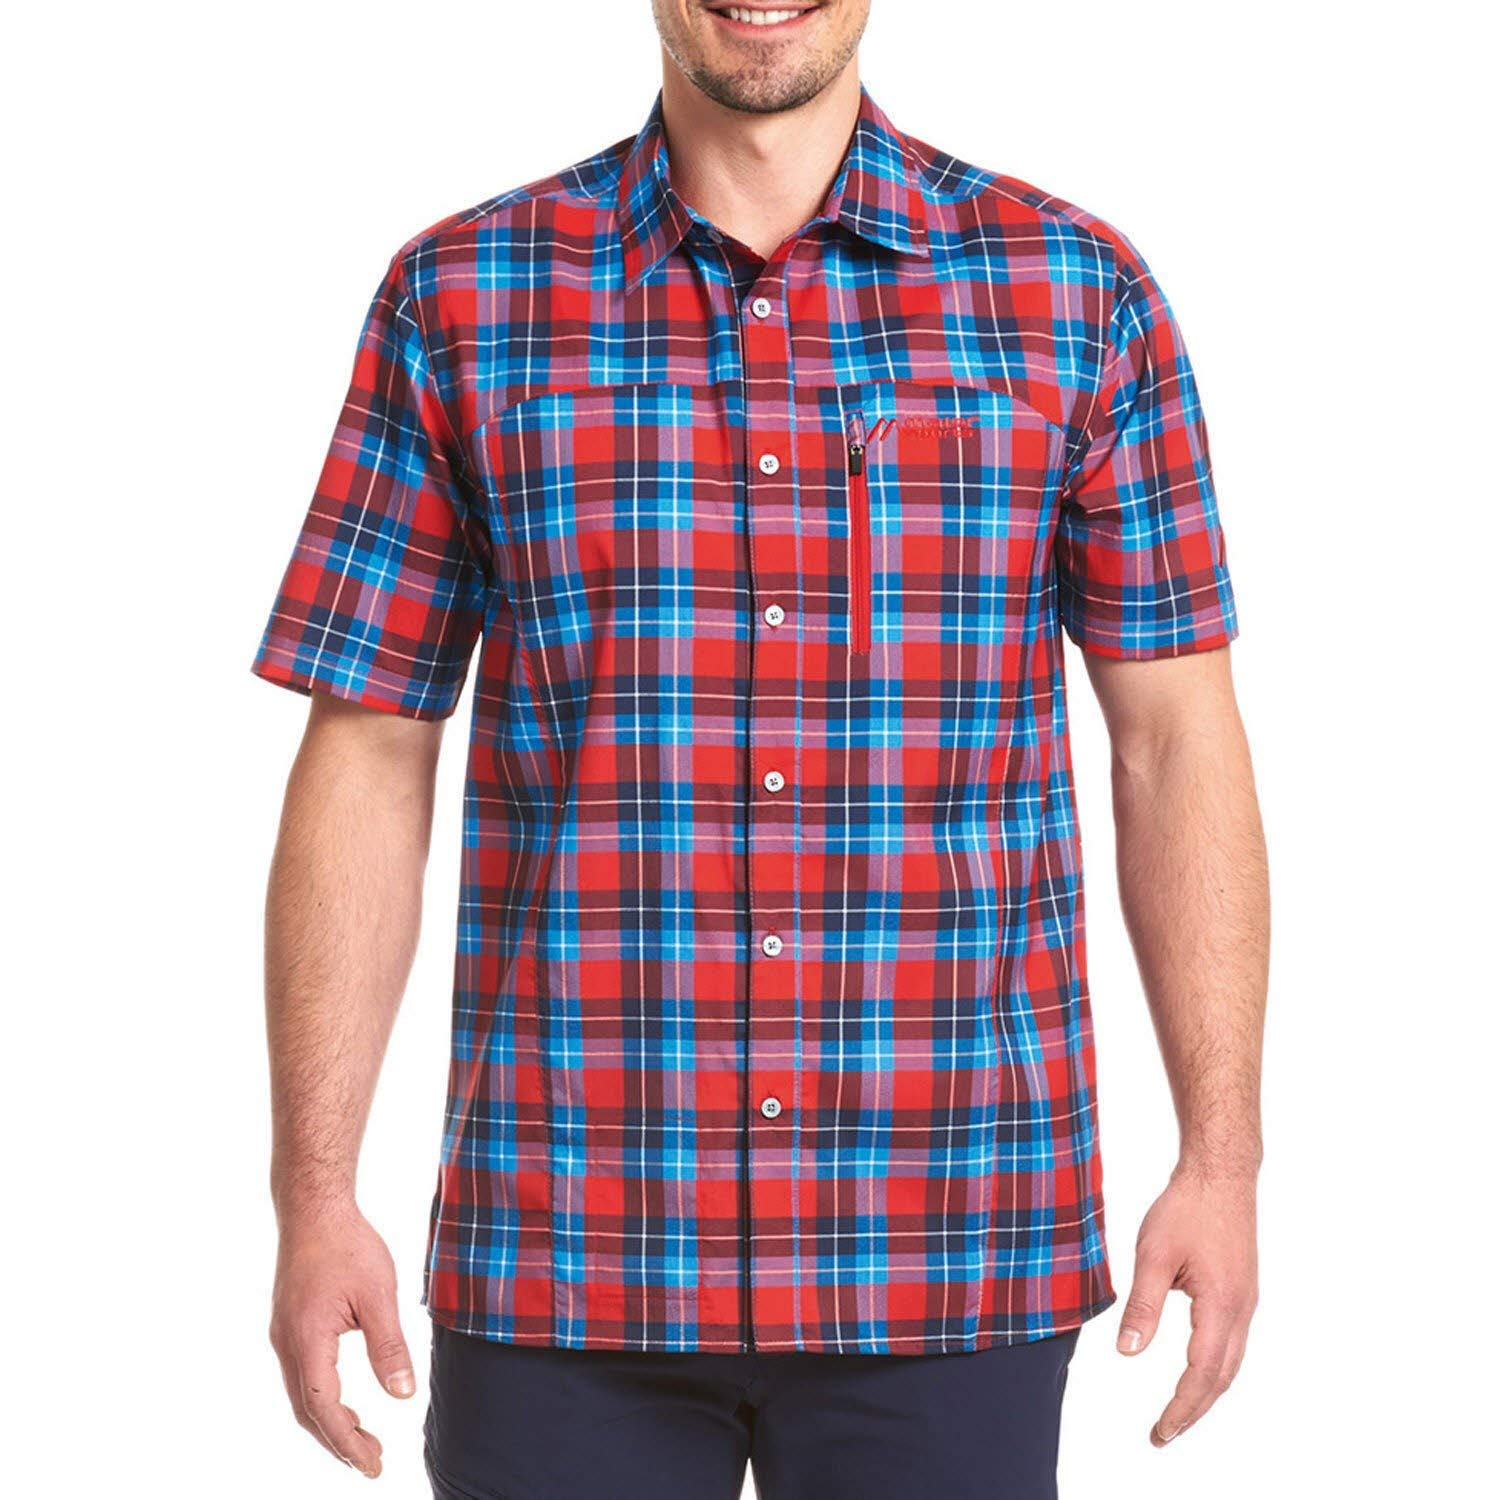 Maier Sports Herren Funktionshemd Madoc S/S red/blue check 54